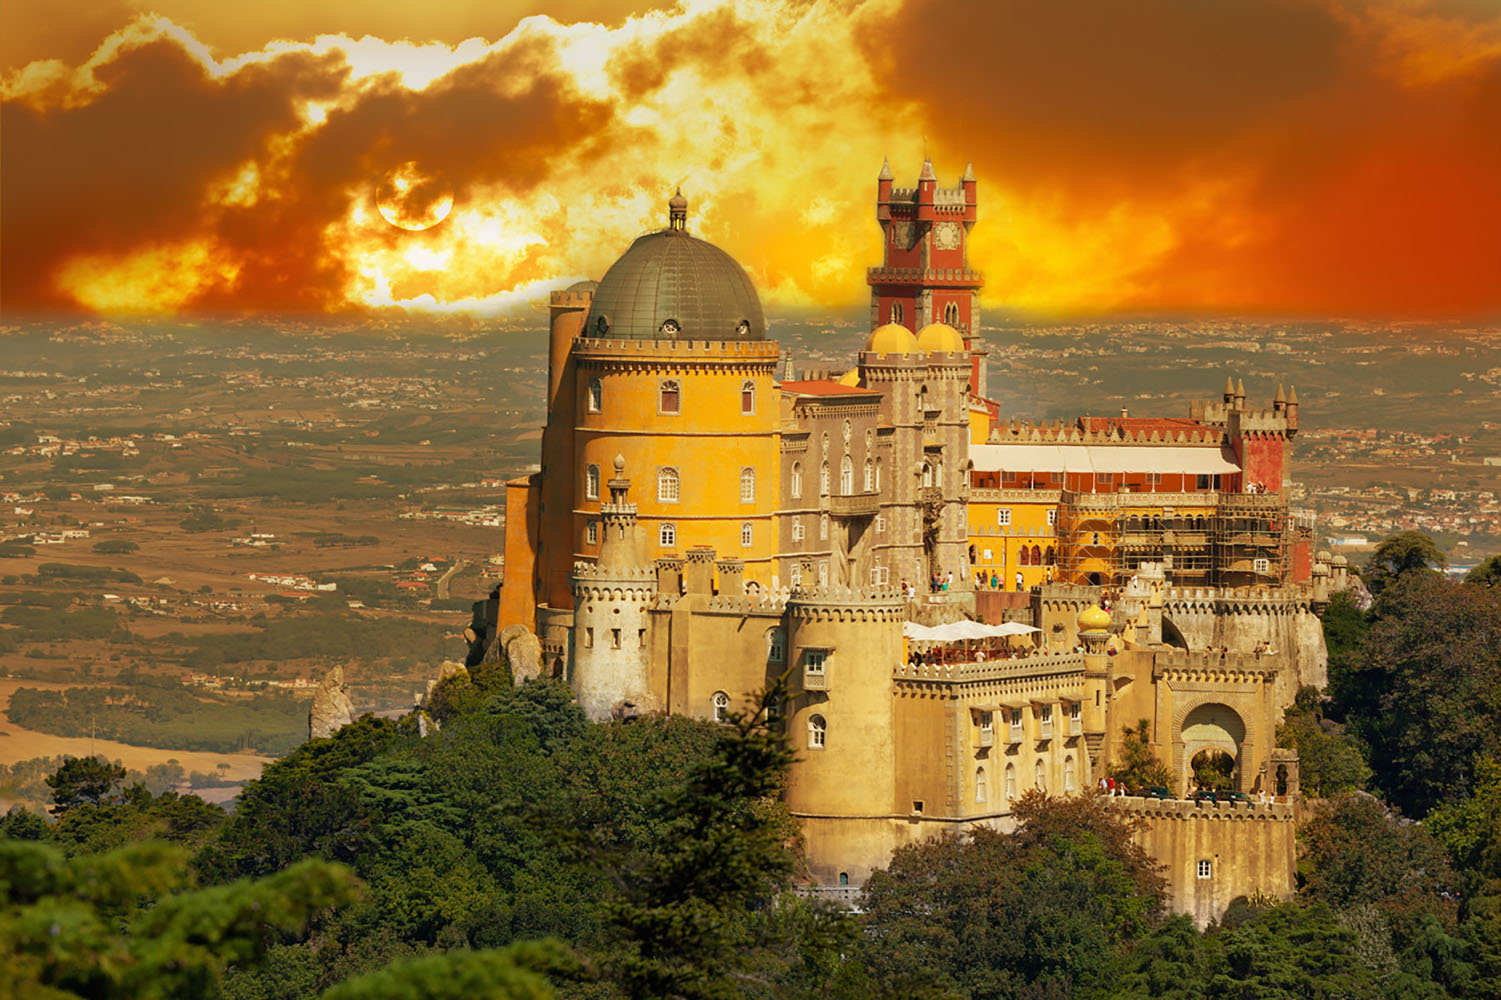 Sintra is a popular day trip destination thanks to a few memorable landmarks, including the most iconic is Pena Palace.